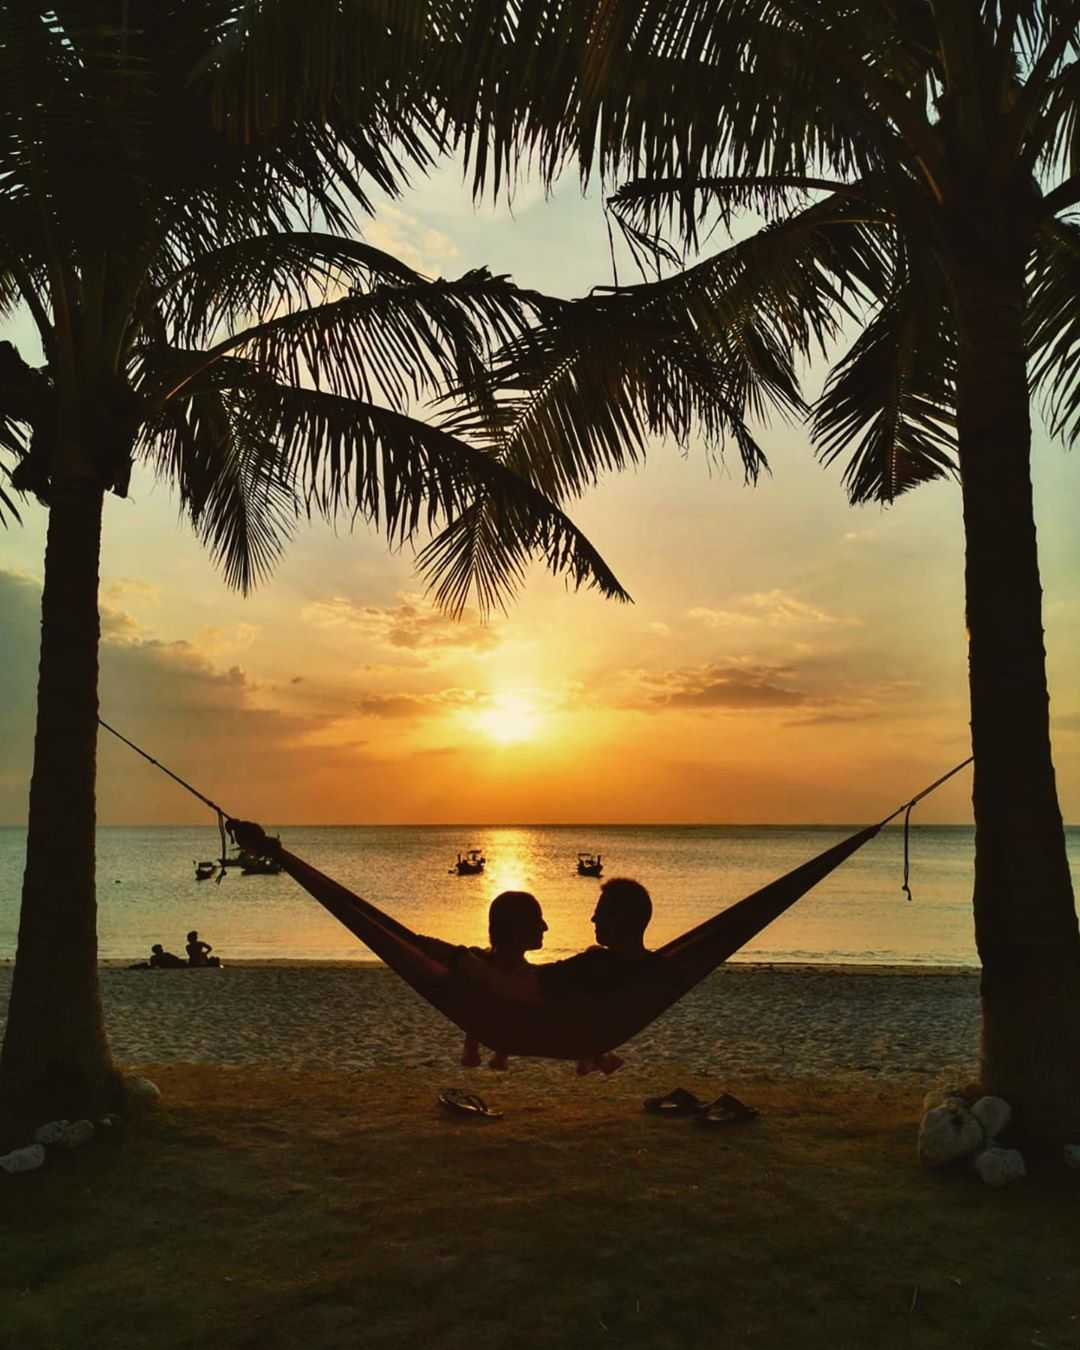 Hanging out in a hammock on the beach of Koh Lanta while the sun sets